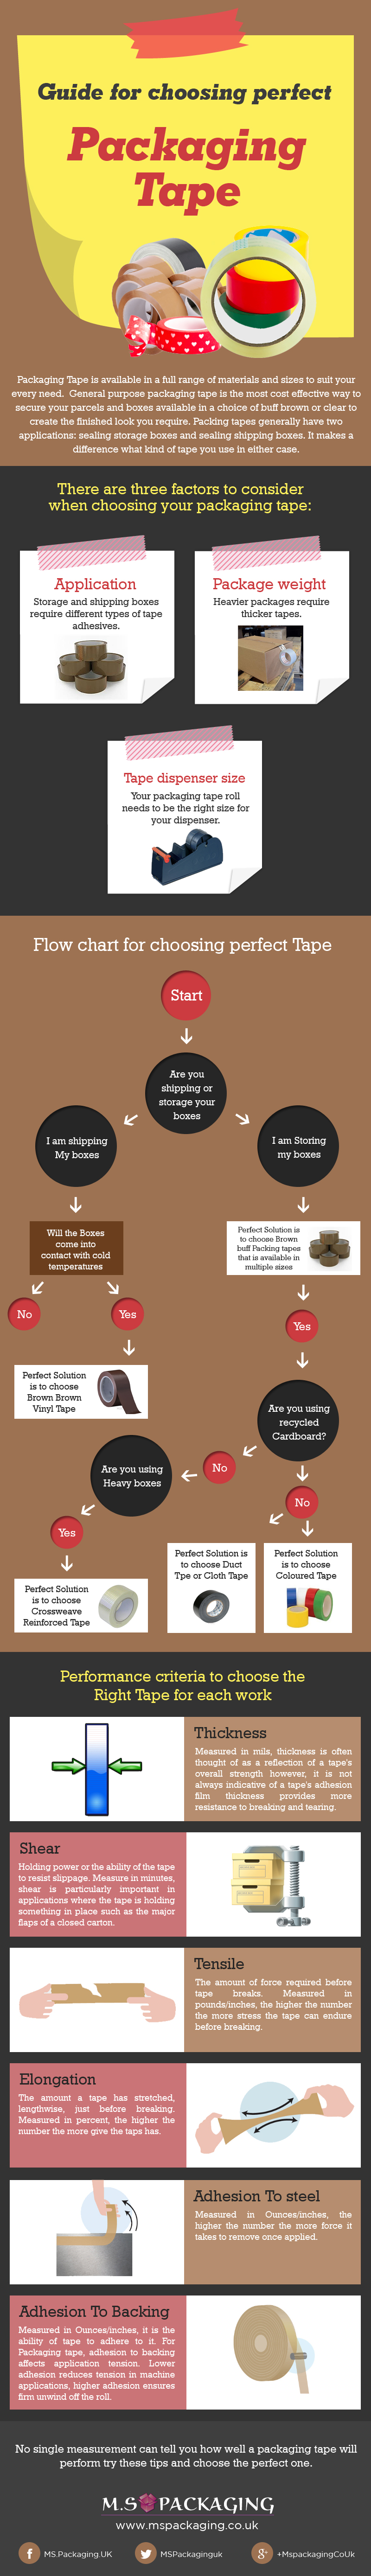 Guide For Choosing Perfect Packaging Tape [Infographic]